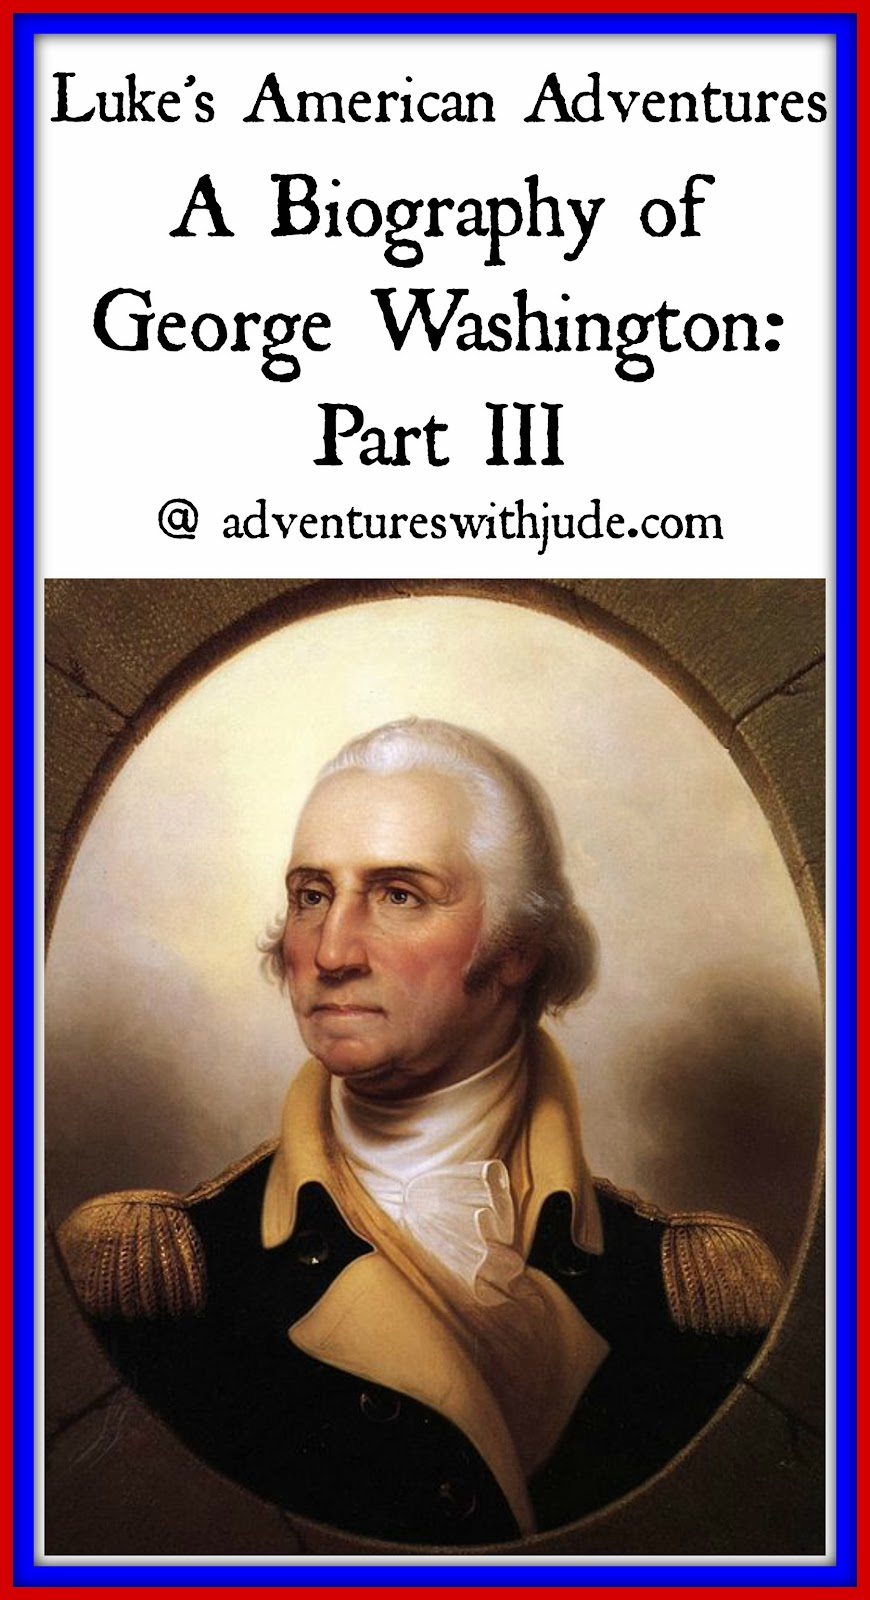 a biography and life work of george washington born in westmoreland county At popes creek farm in westmoreland county on the life of george washington: 1732 - george washington is born at popes creek farm in westmoreland.